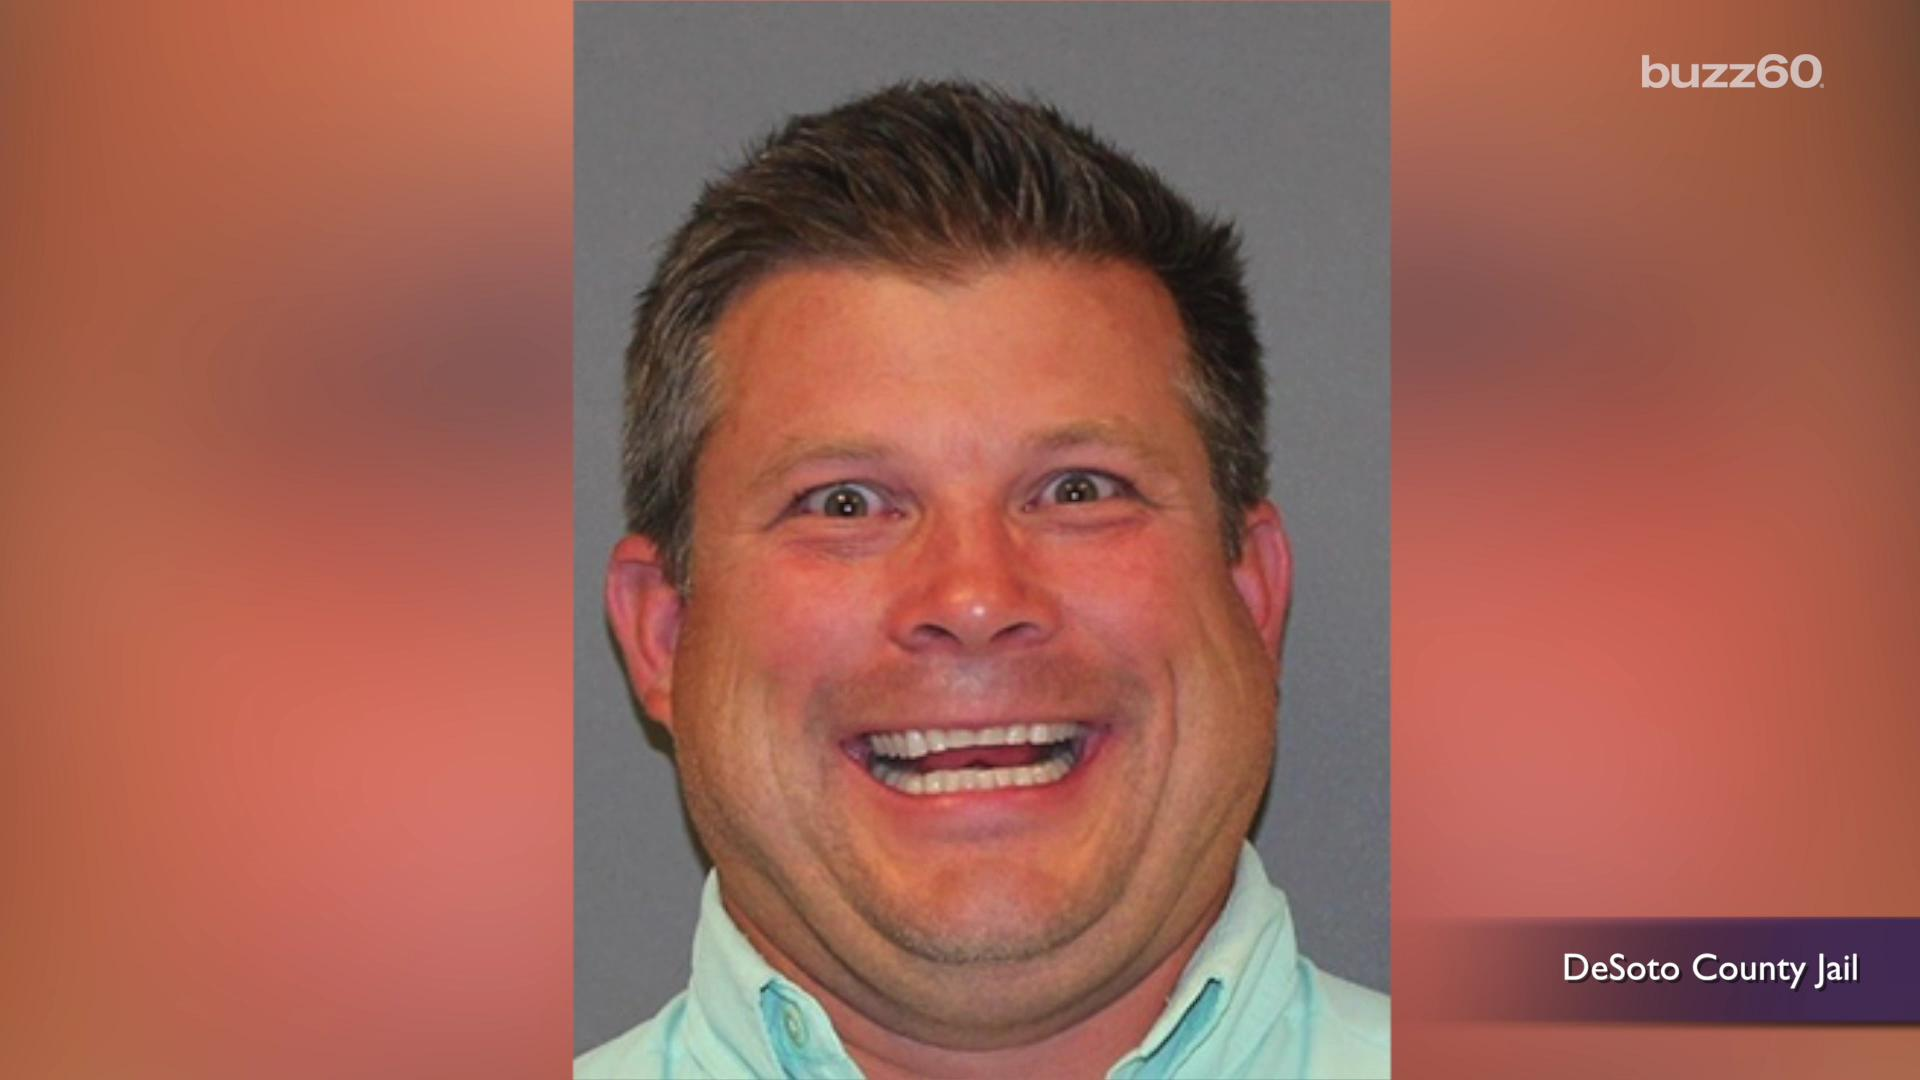 Elected official looks super happy to get arrested in mugshot